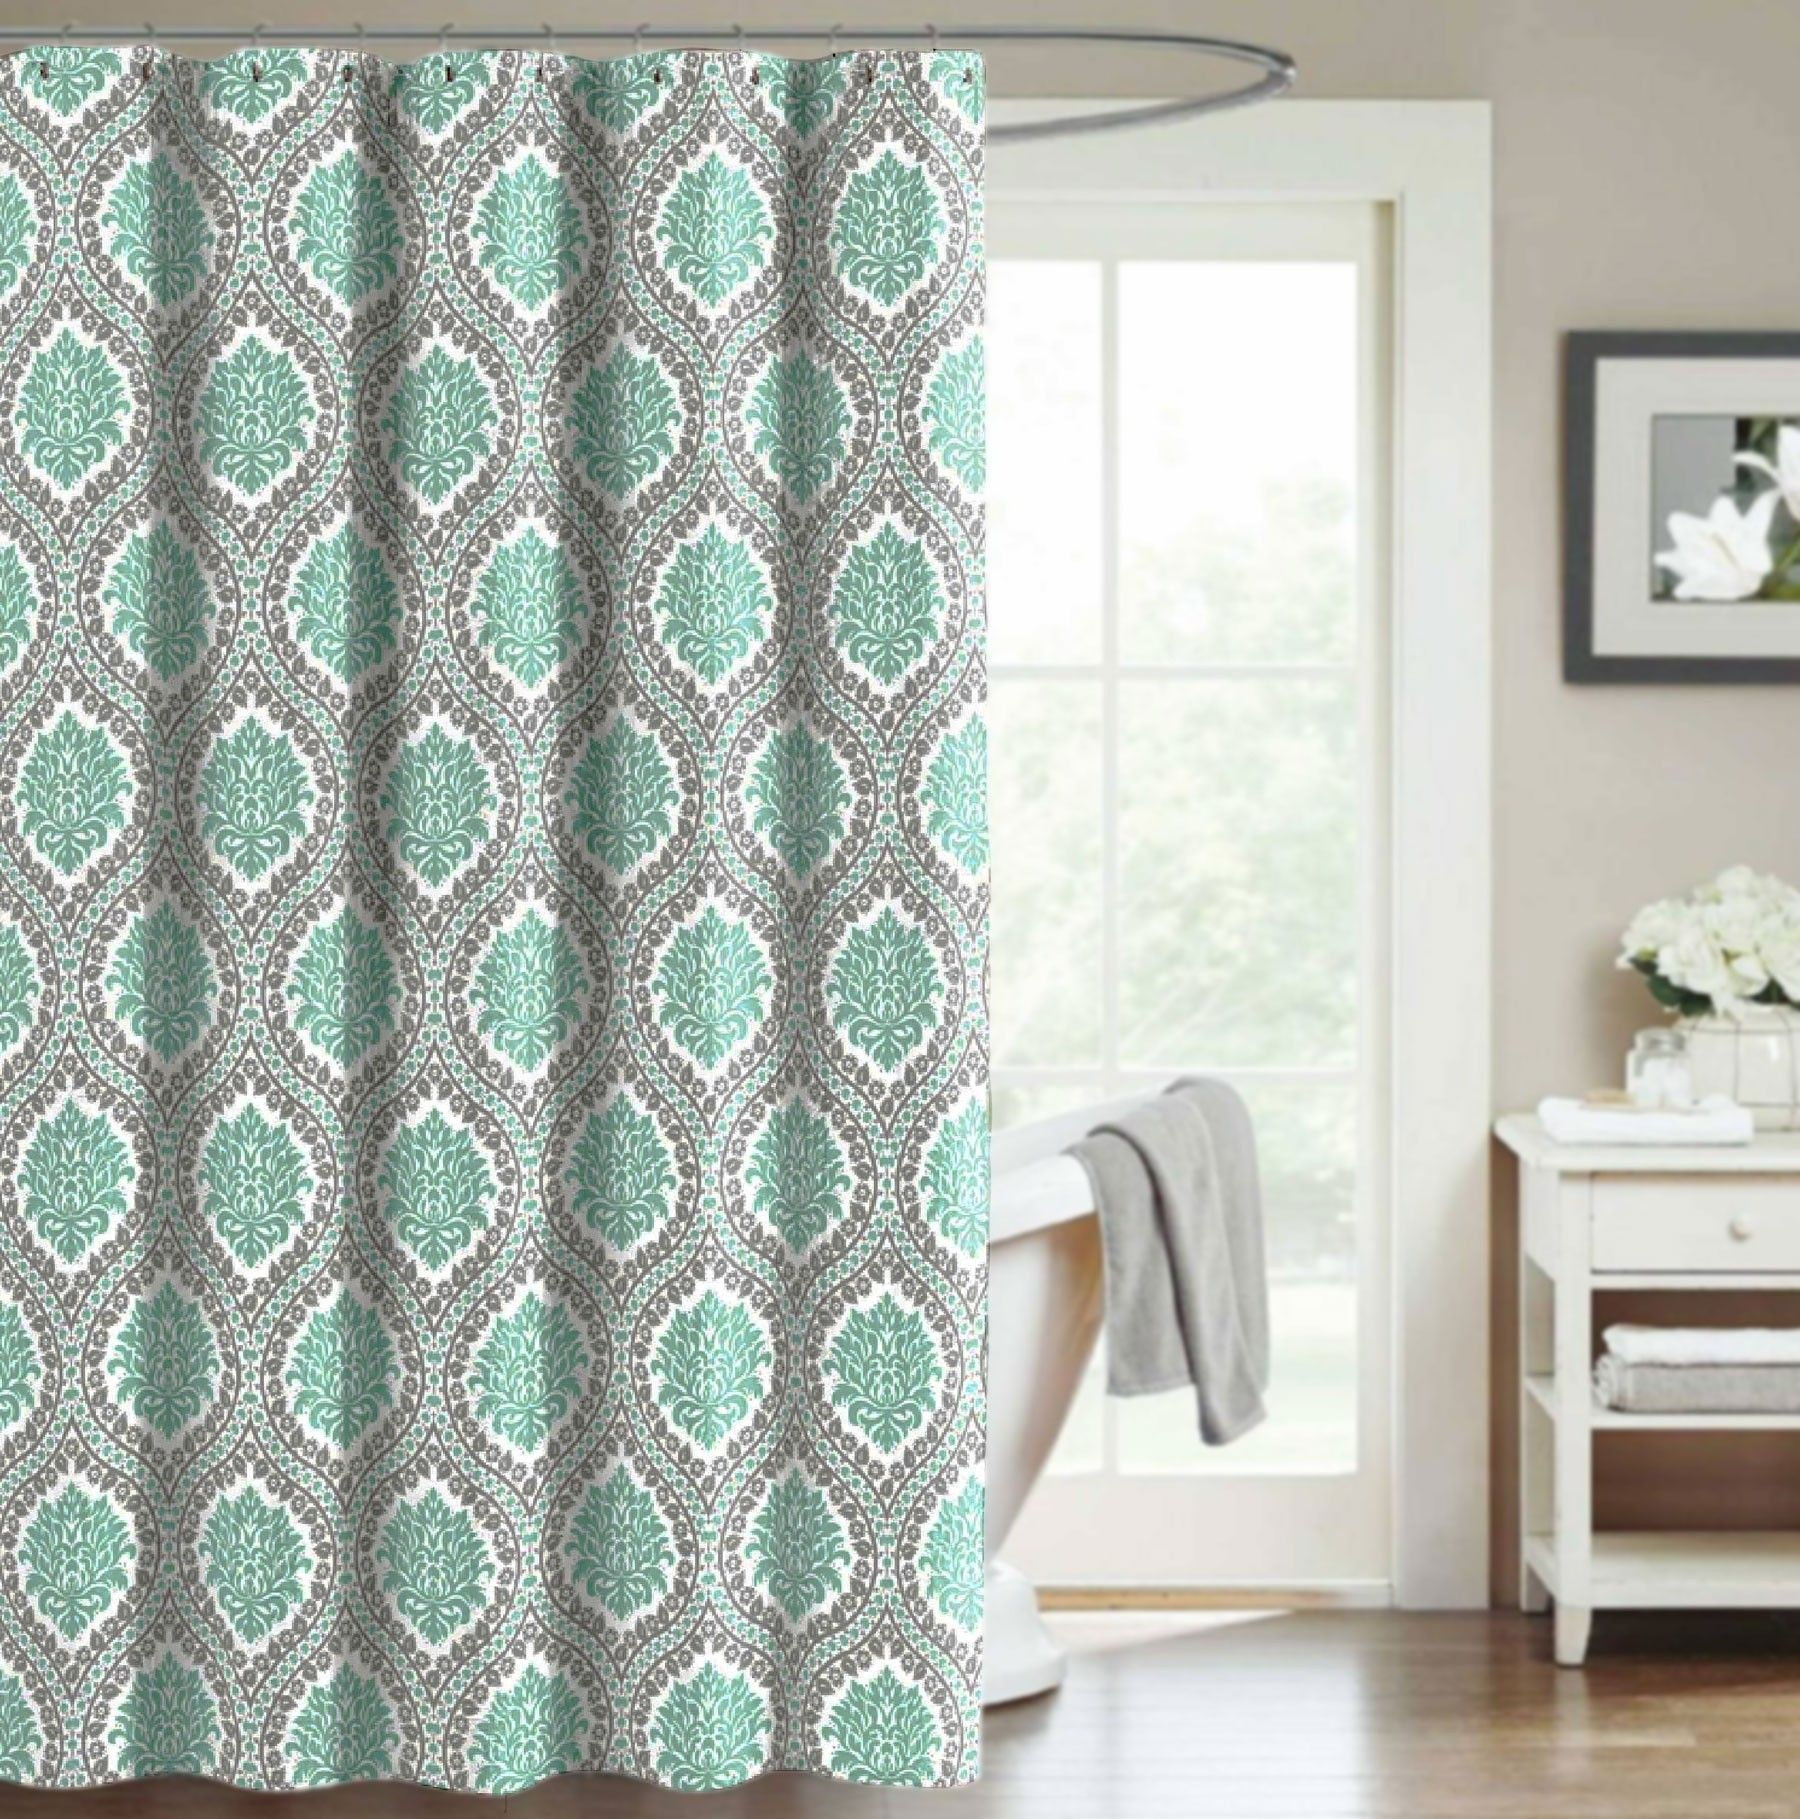 Crest home bellavista fabric shower curtain teal gray medallion